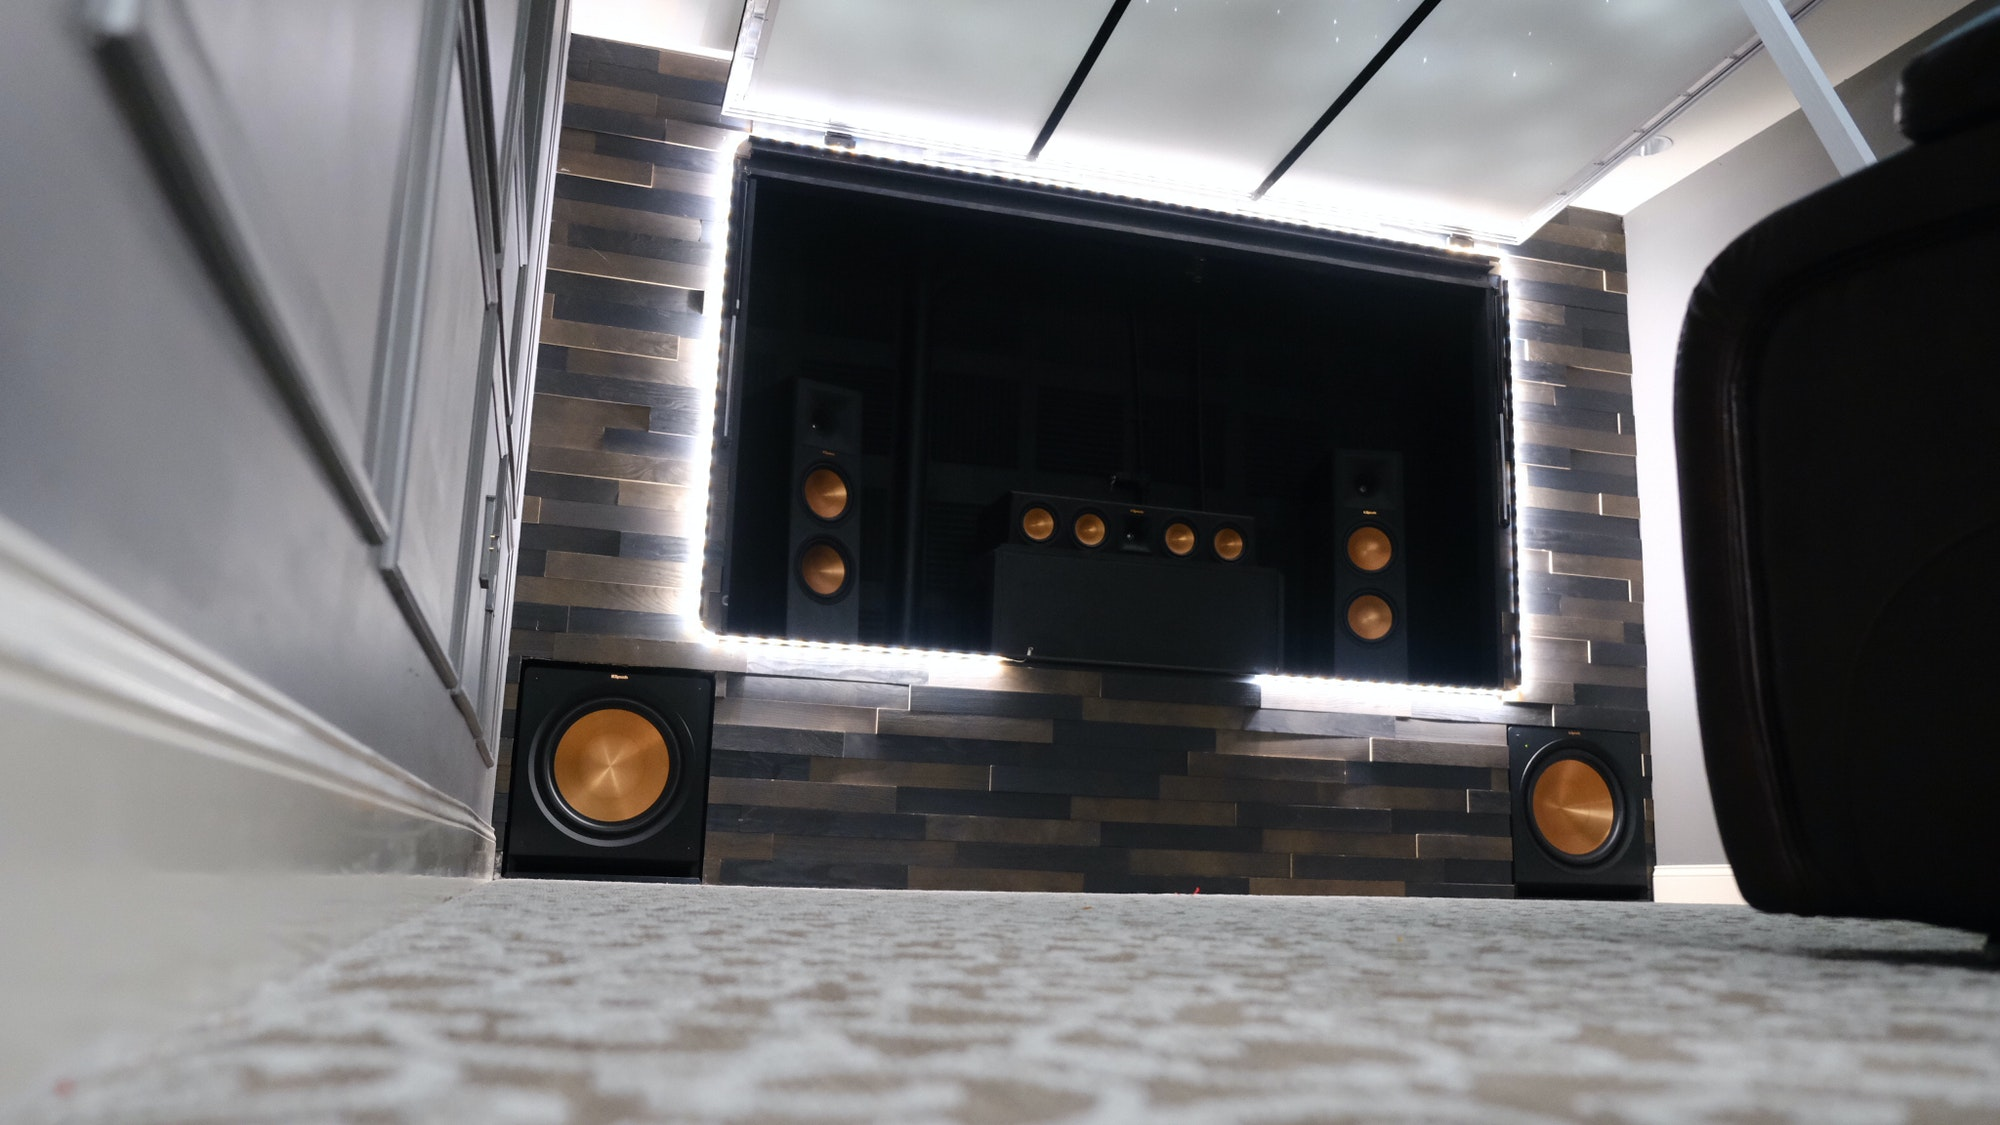 Klipsch Shawn Repp home theater front view